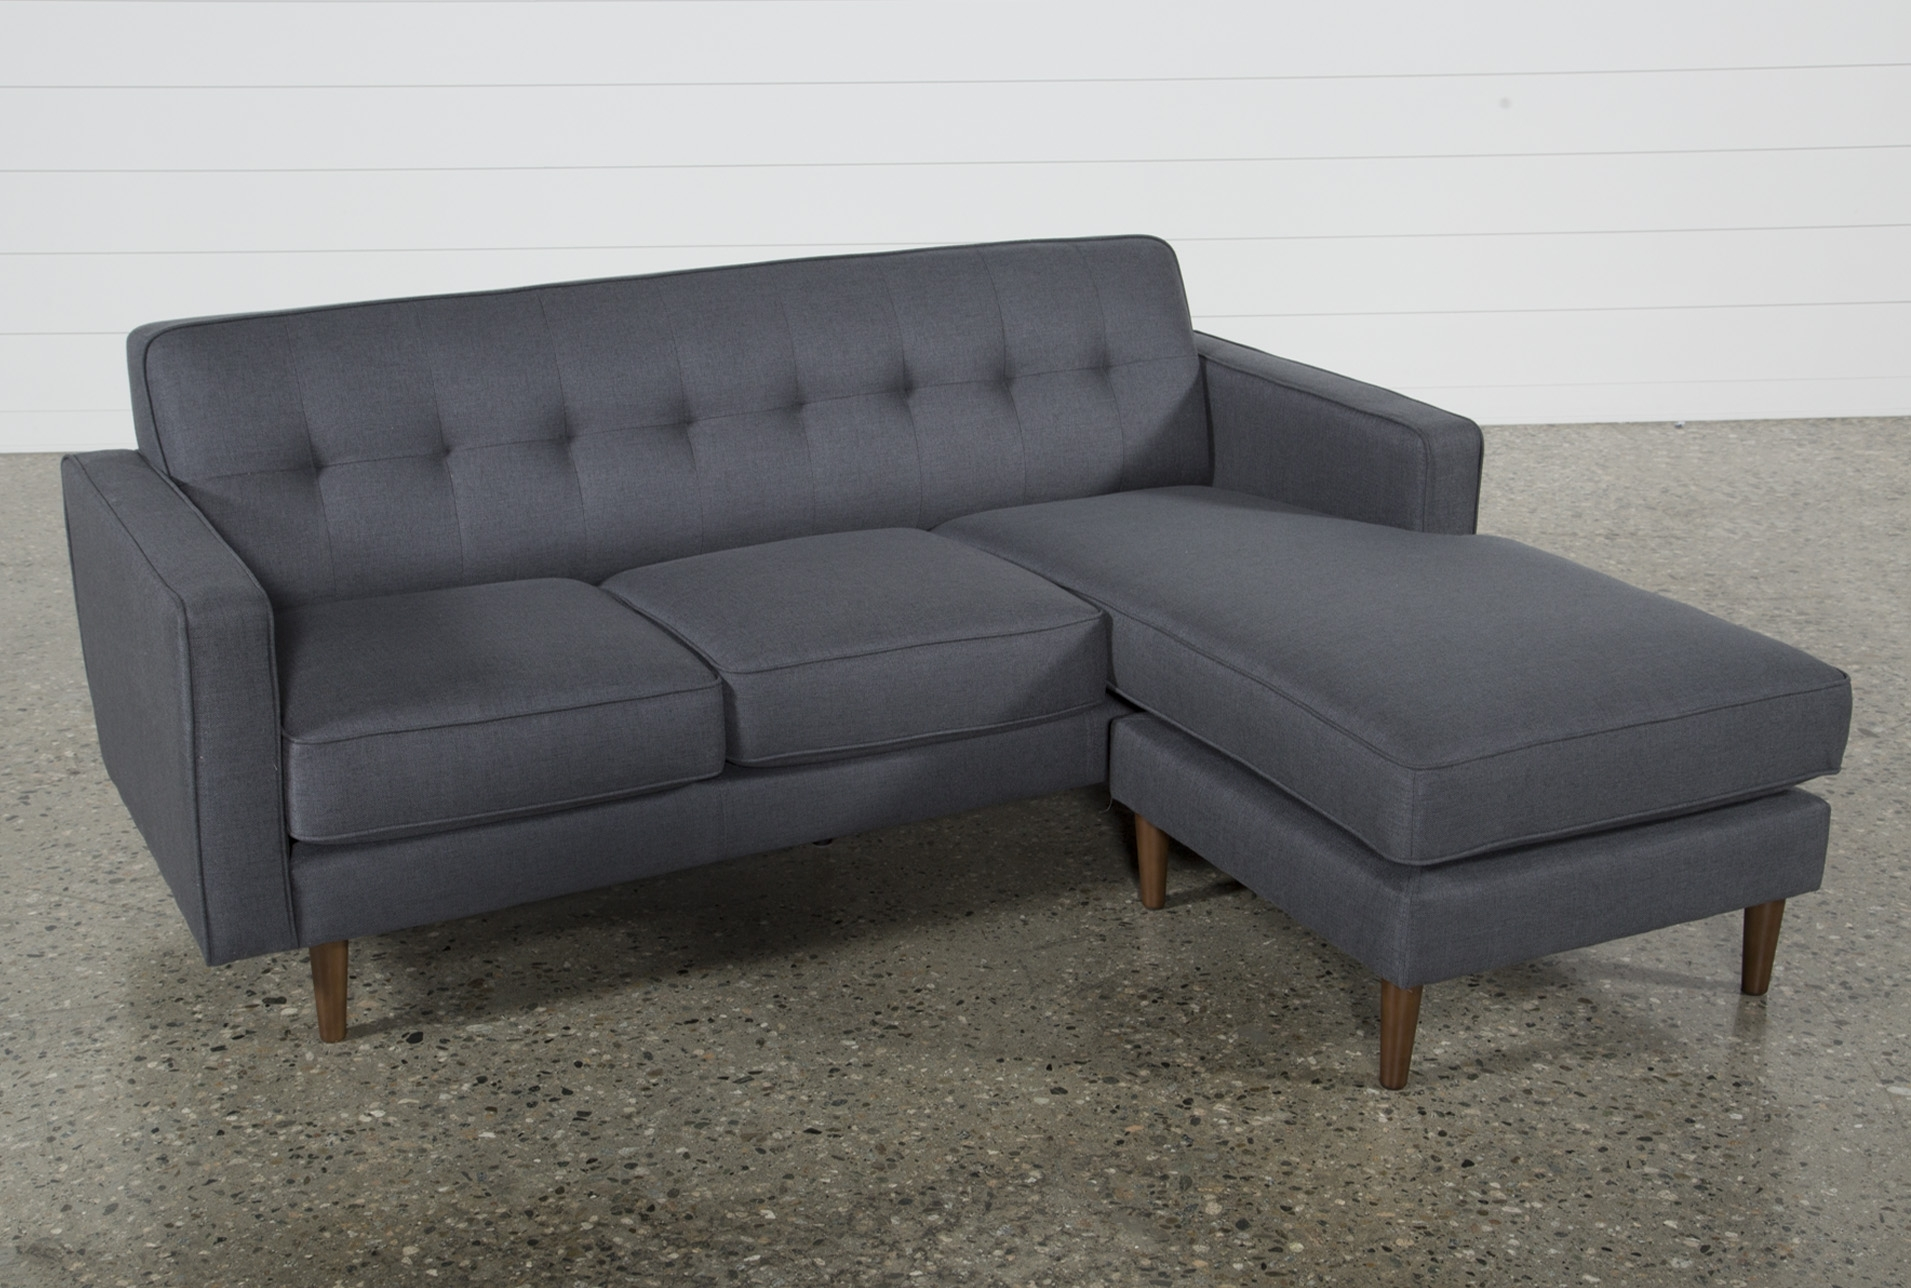 London Dark Grey Reversible Sofa Chaise | Products | Pinterest Intended For London Optical Reversible Sofa Chaise Sectionals (Image 13 of 25)